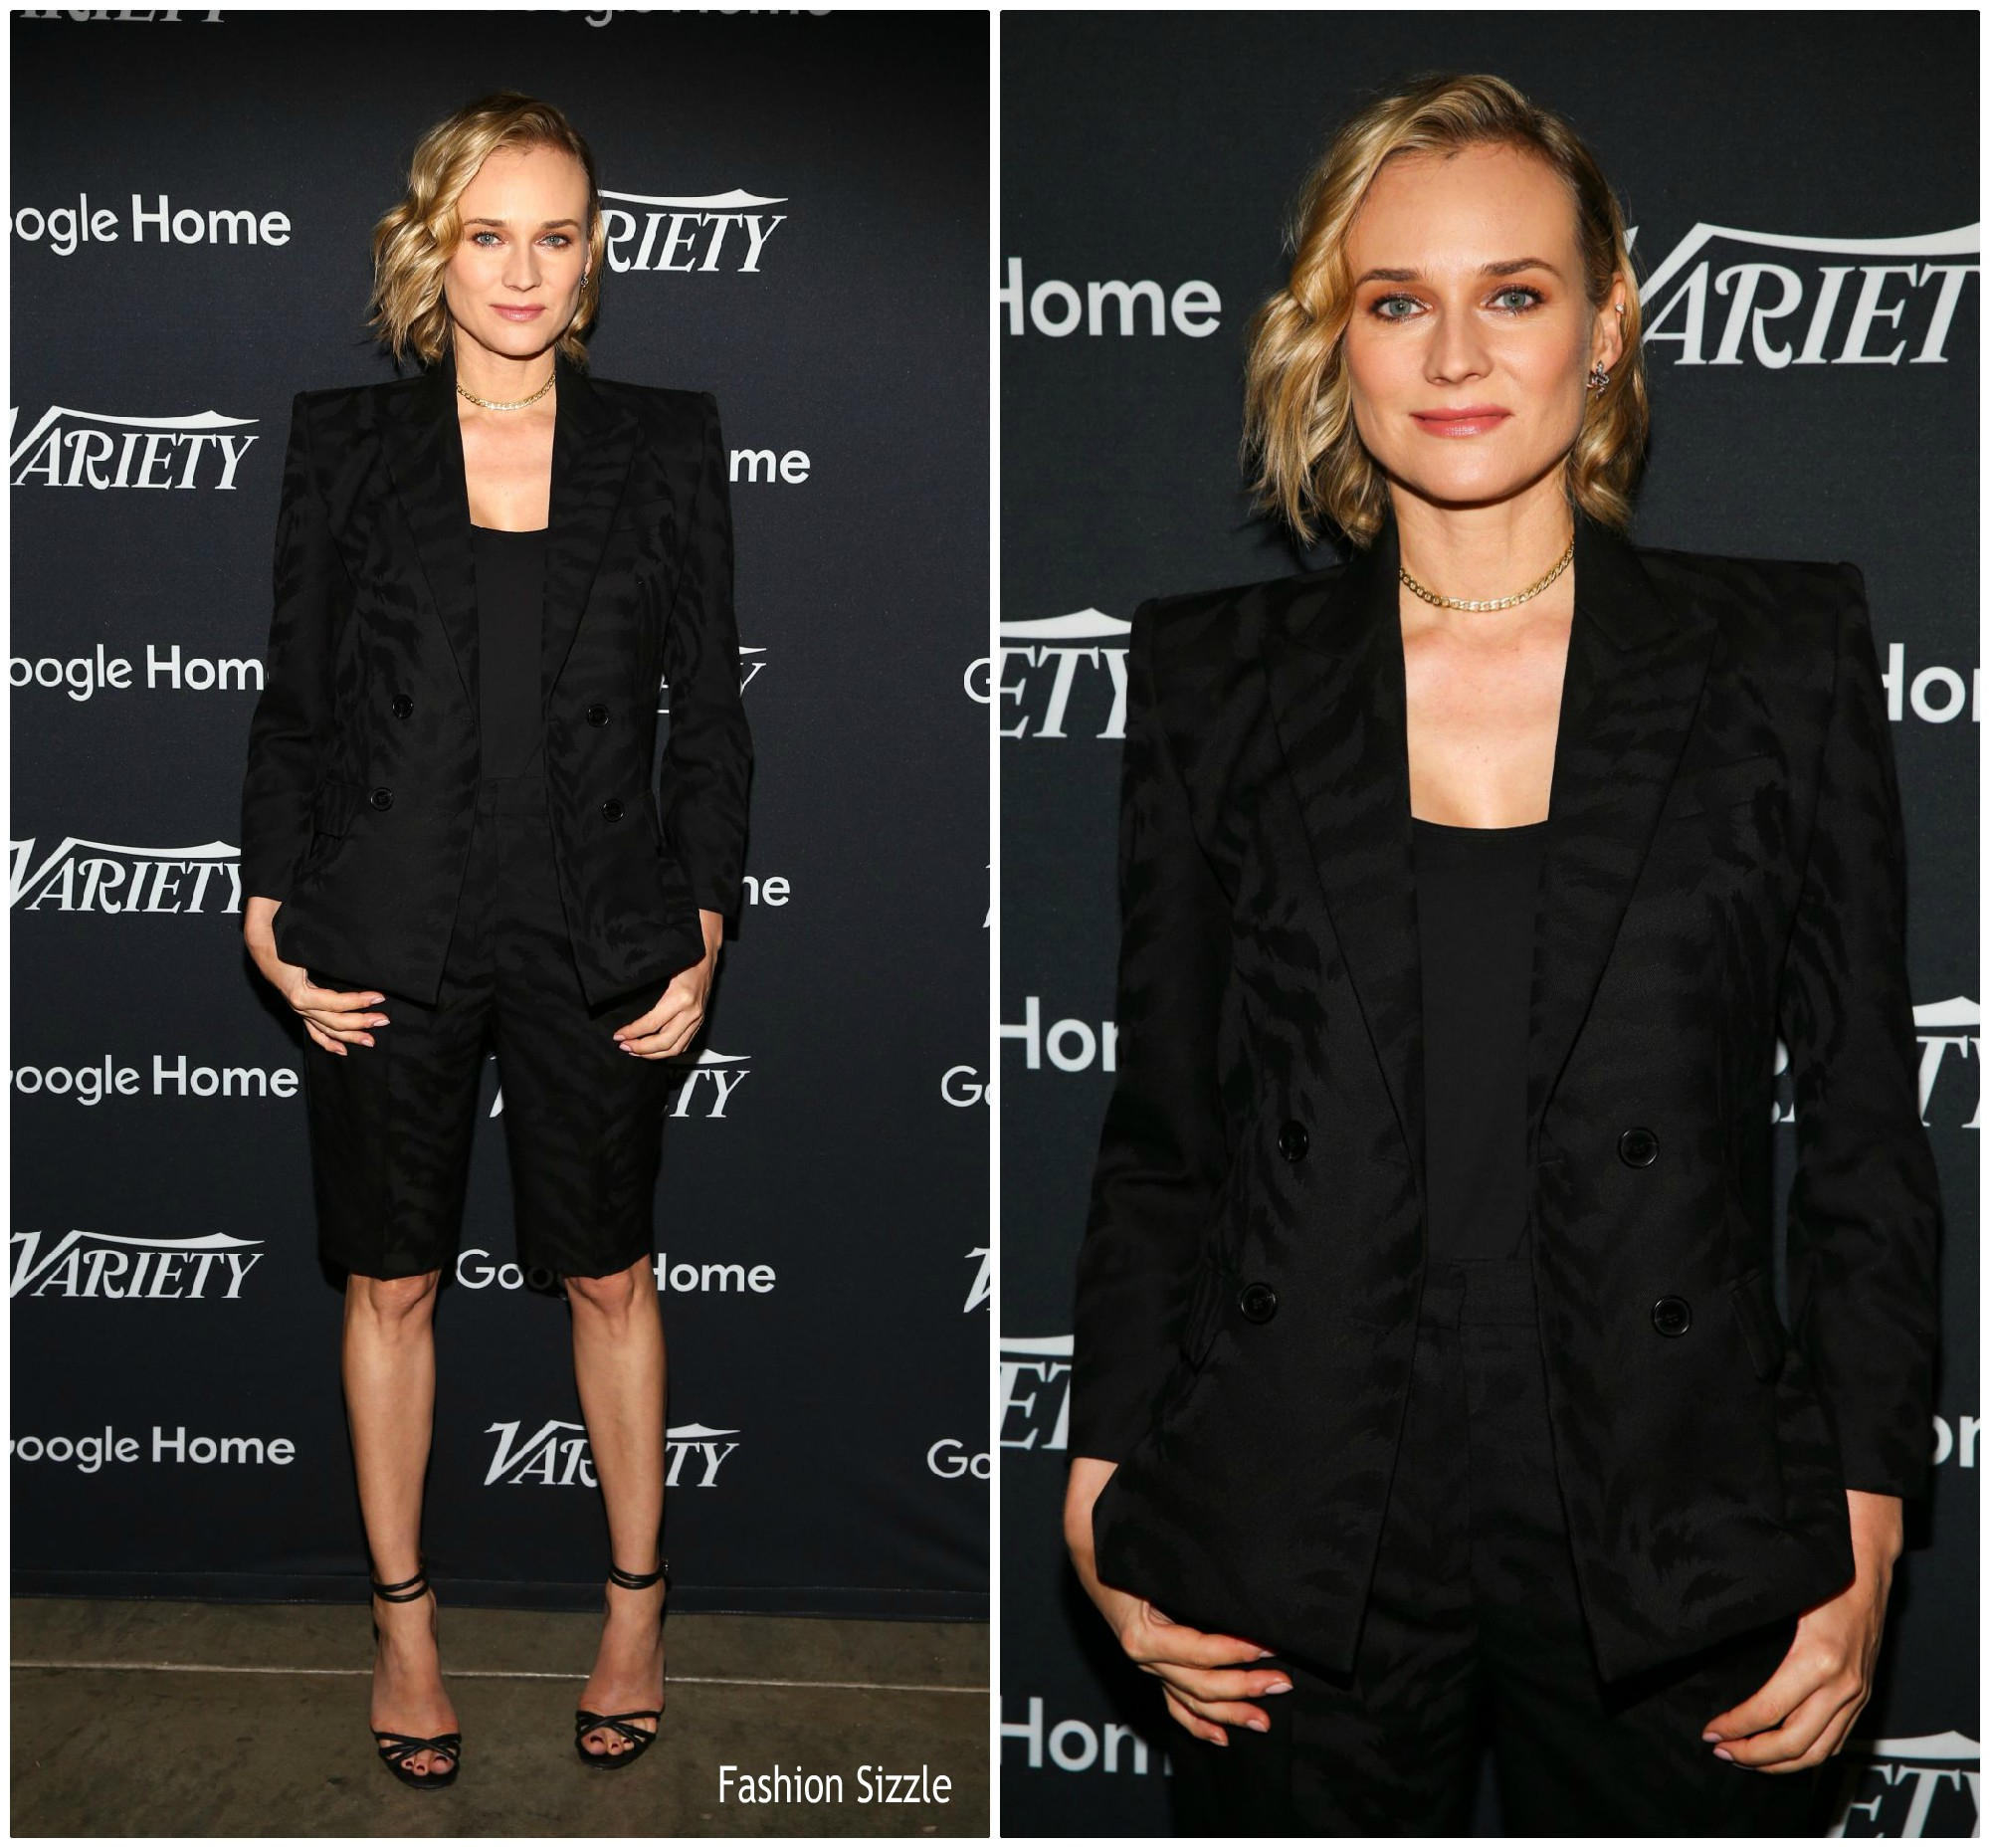 diane-kruger-in-givenchy-varietys-actors-on-actors-awards